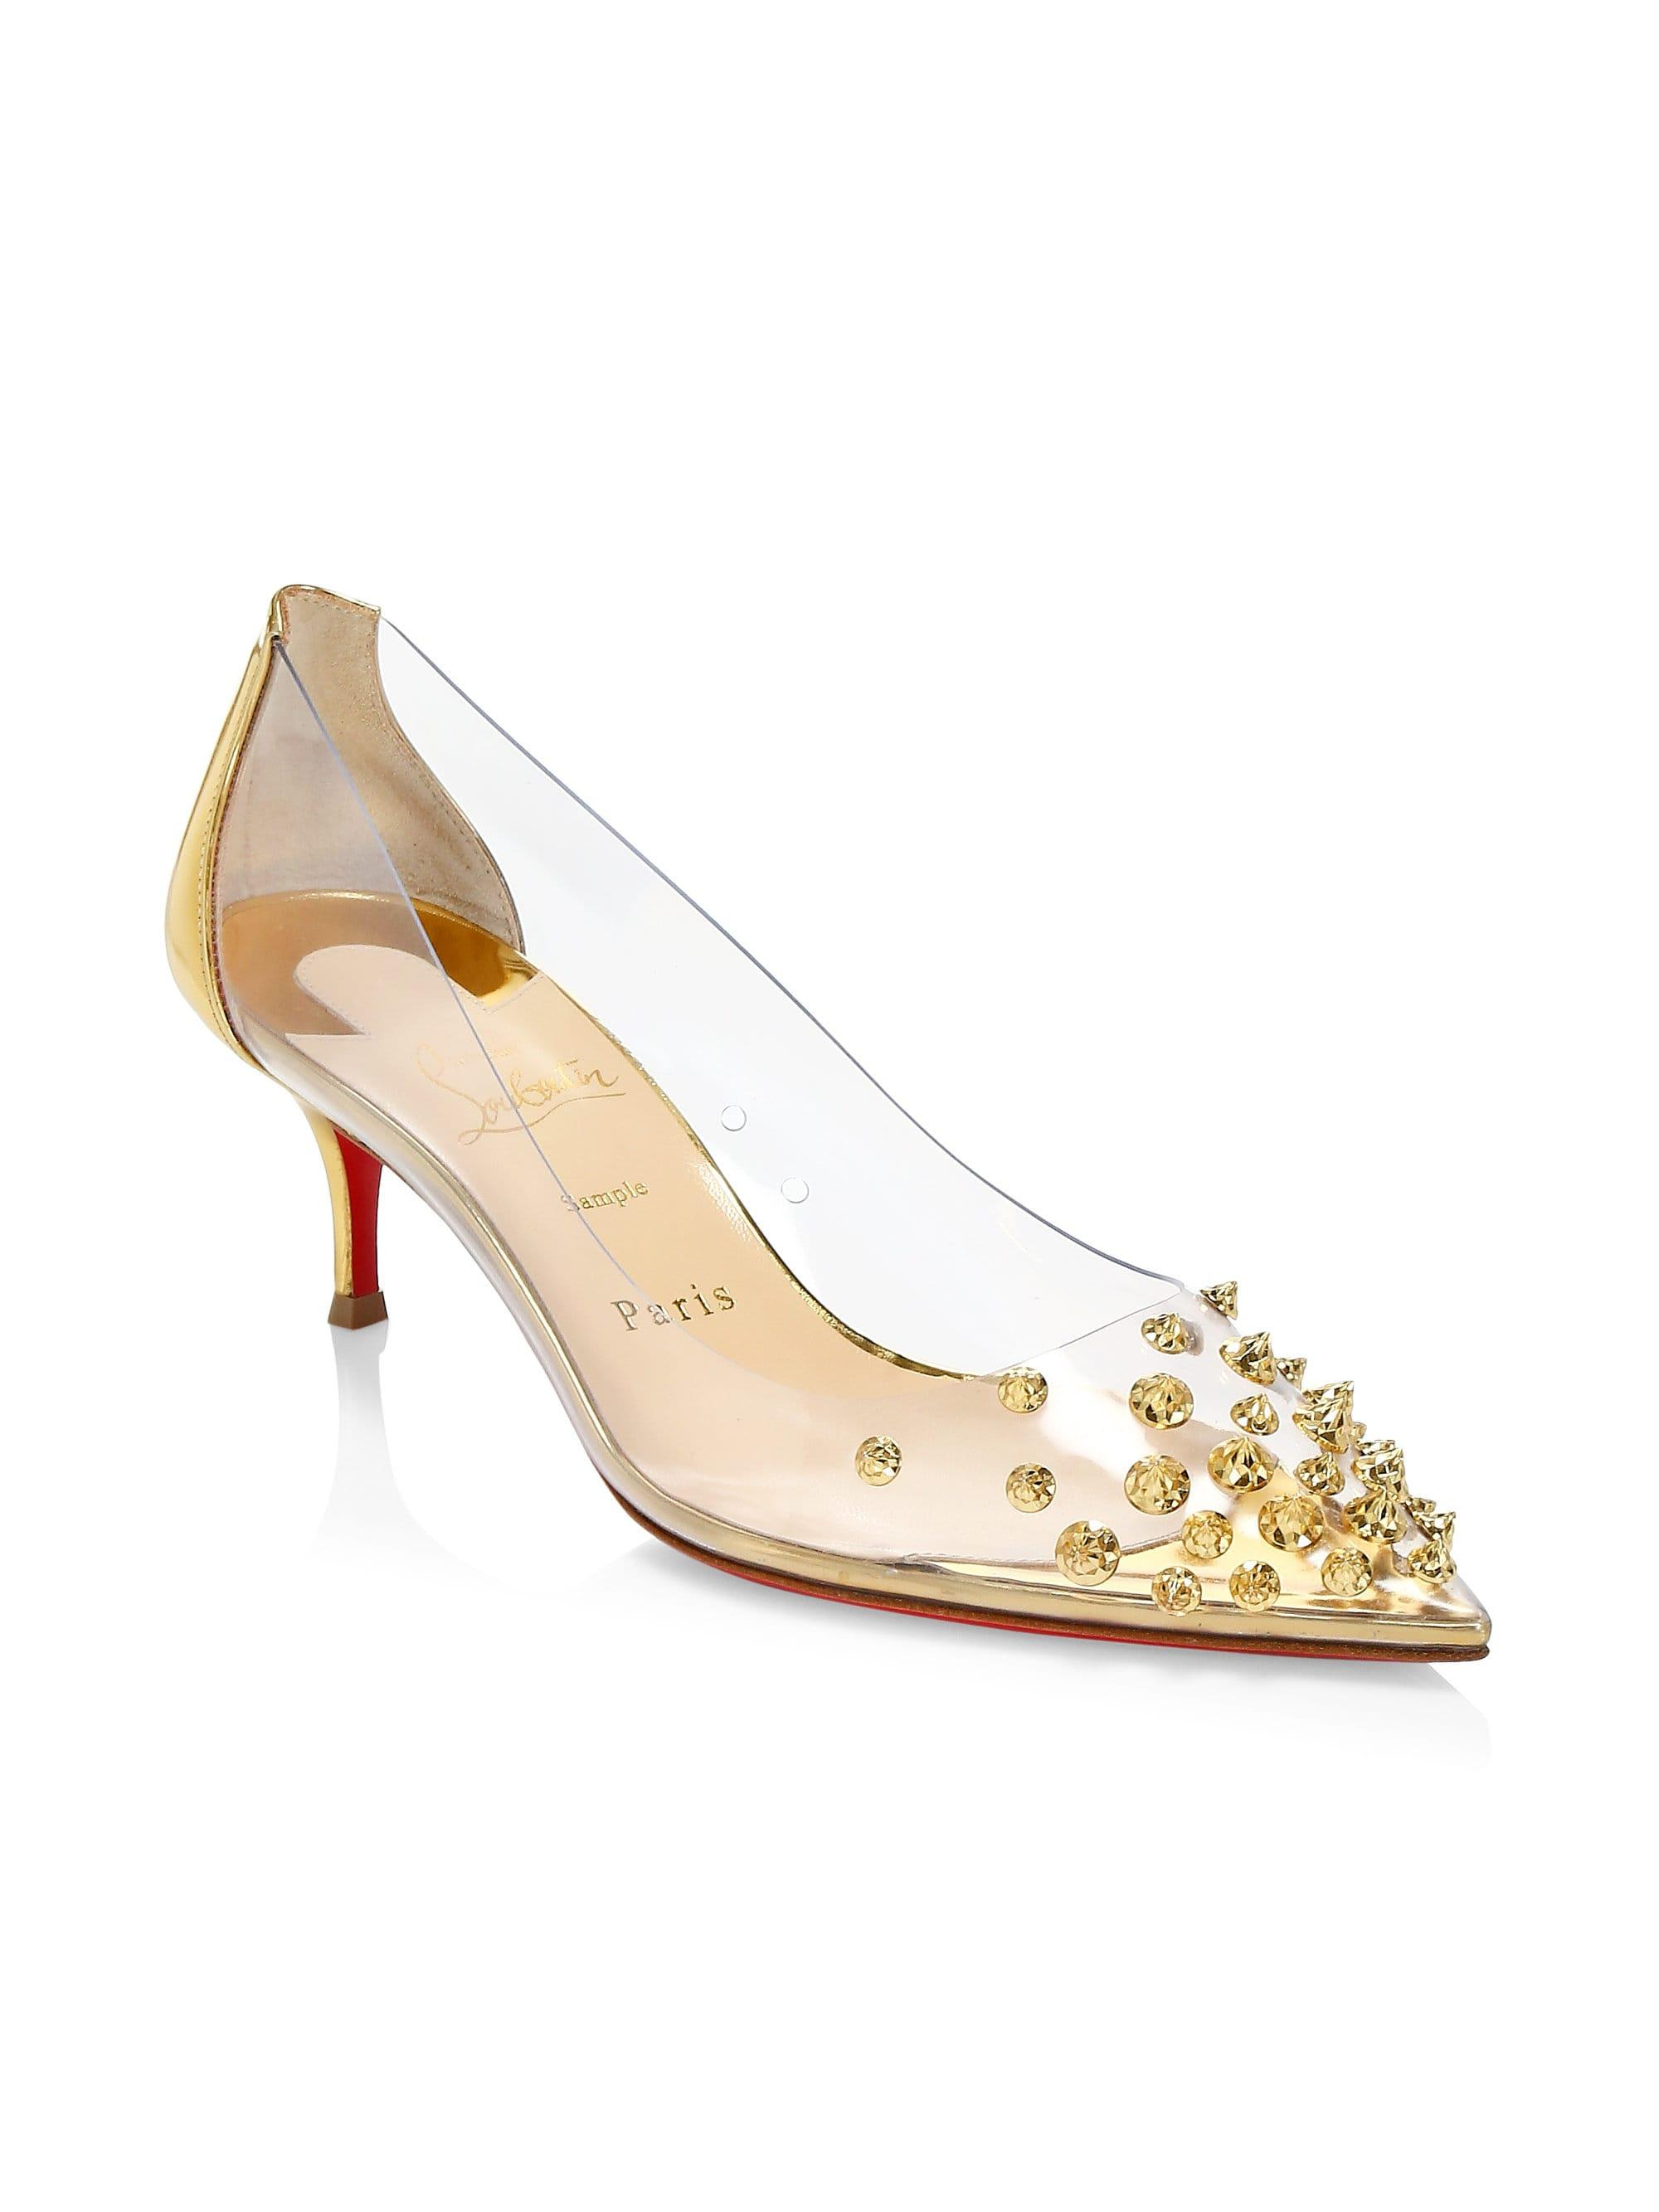 a7196eb95f5 Christian Louboutin Women's Collaclou Leather & Pvc Pumps - Gold in ...